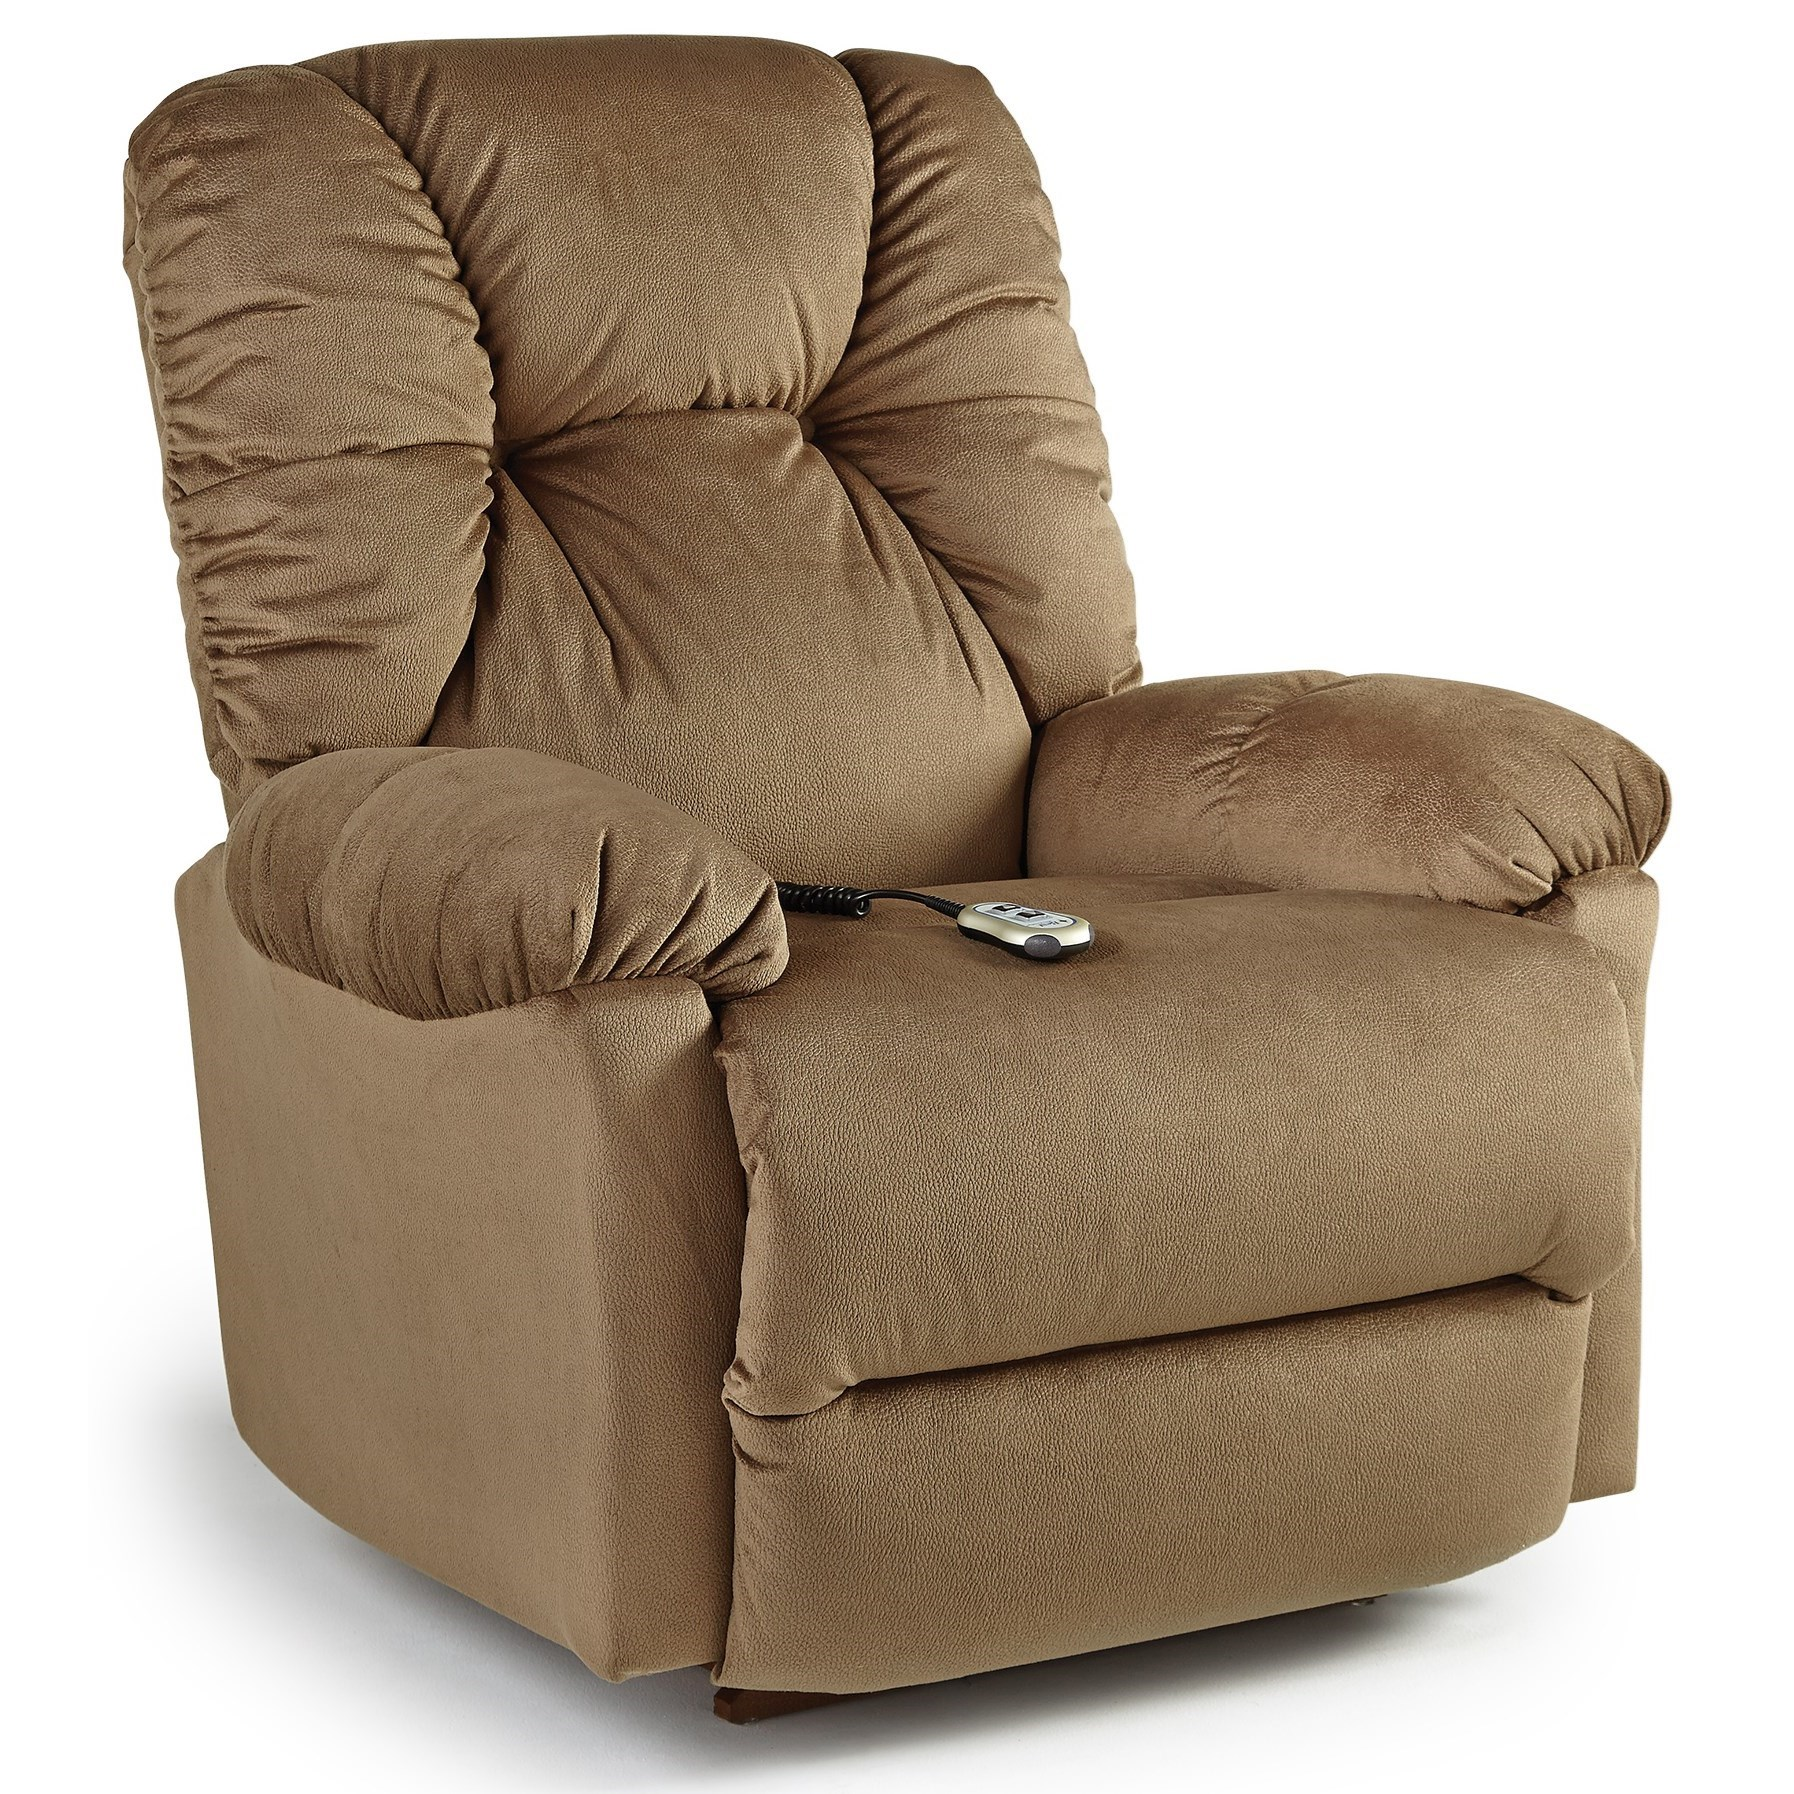 Medium Recliners Power Rocker Recliner by Best Home Furnishings at Hudson's Furniture